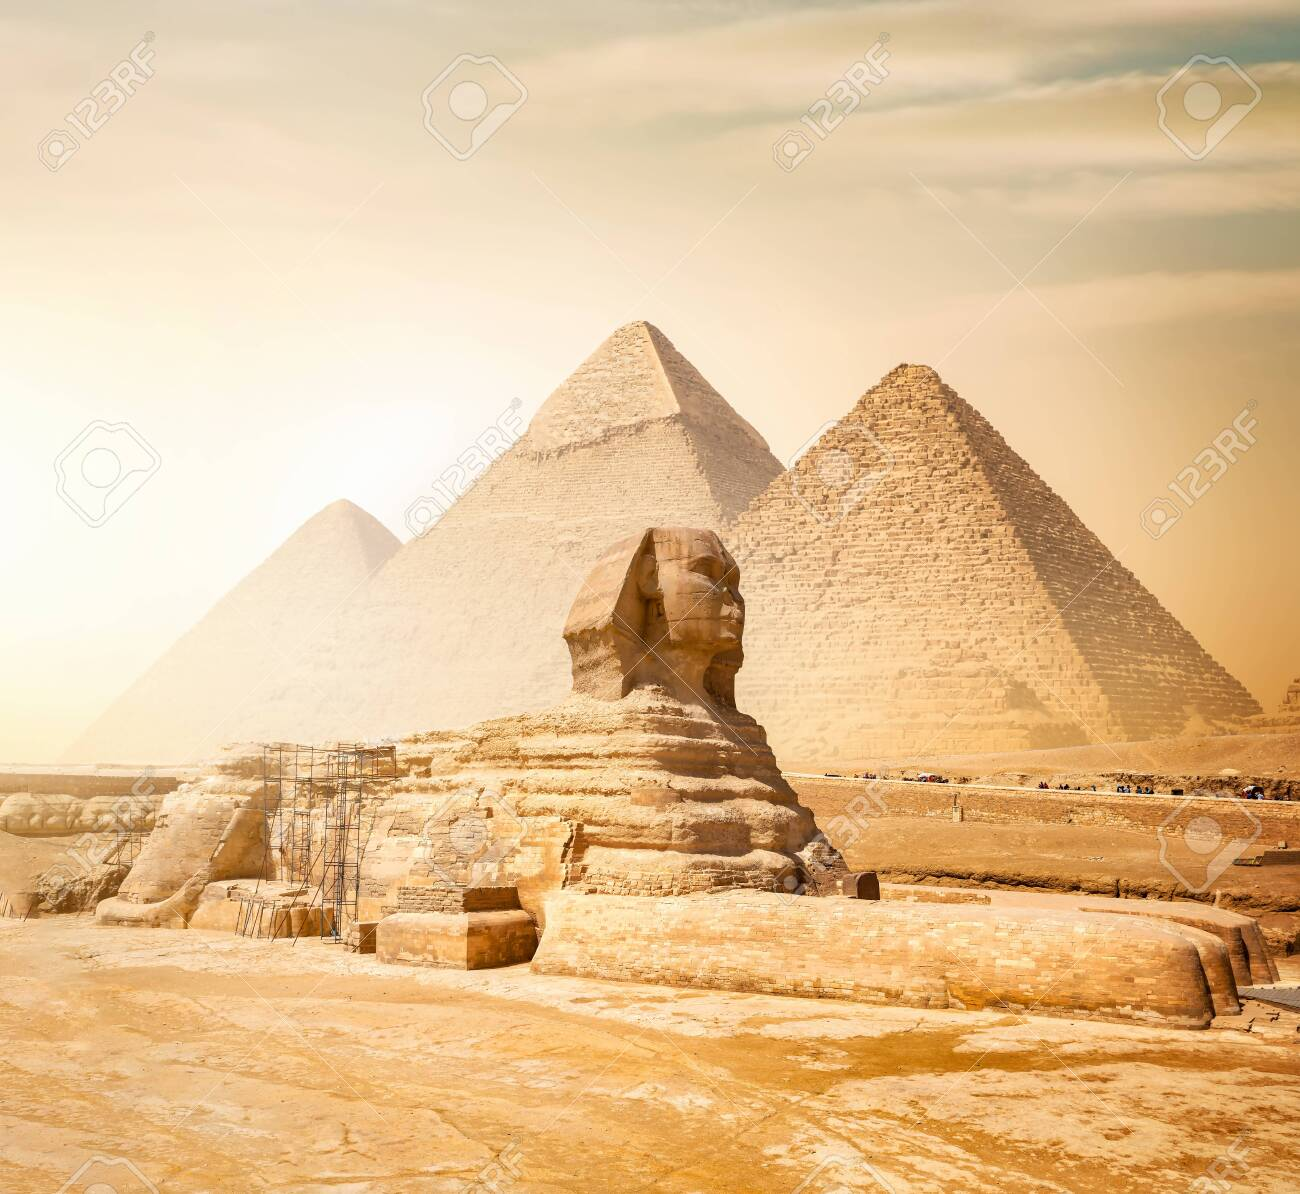 Sphinx and pyramids - 127066907